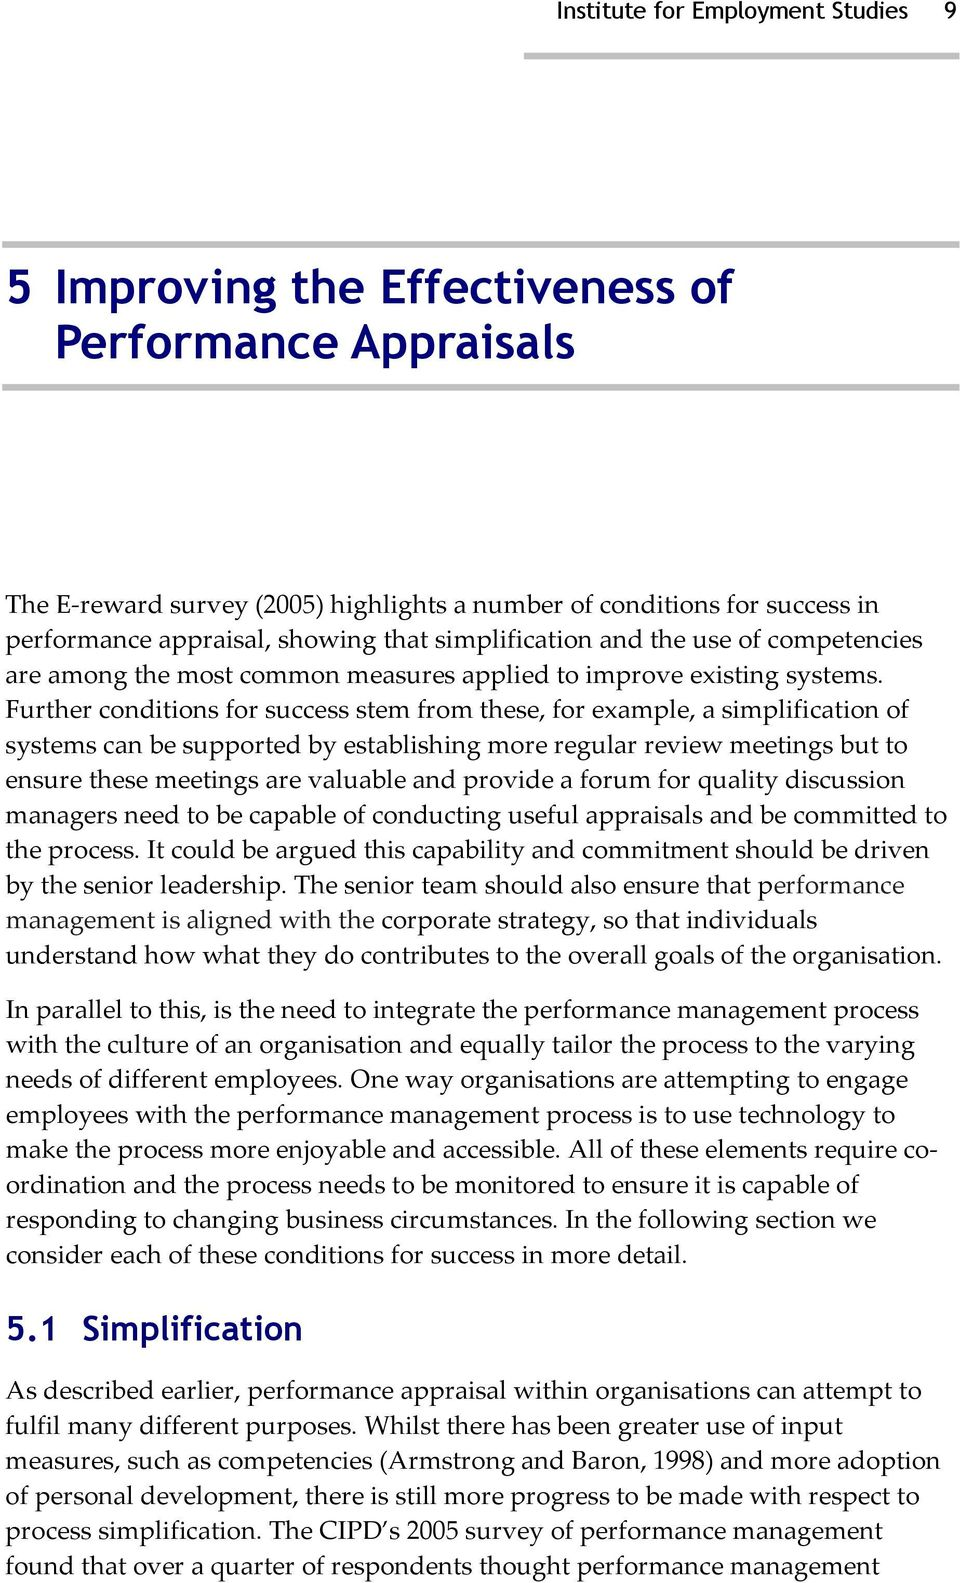 literature review on performance management systems The paper discusses notable research findings, provides an overview of  performance management systems, benchmarking and the balanced scorecard.